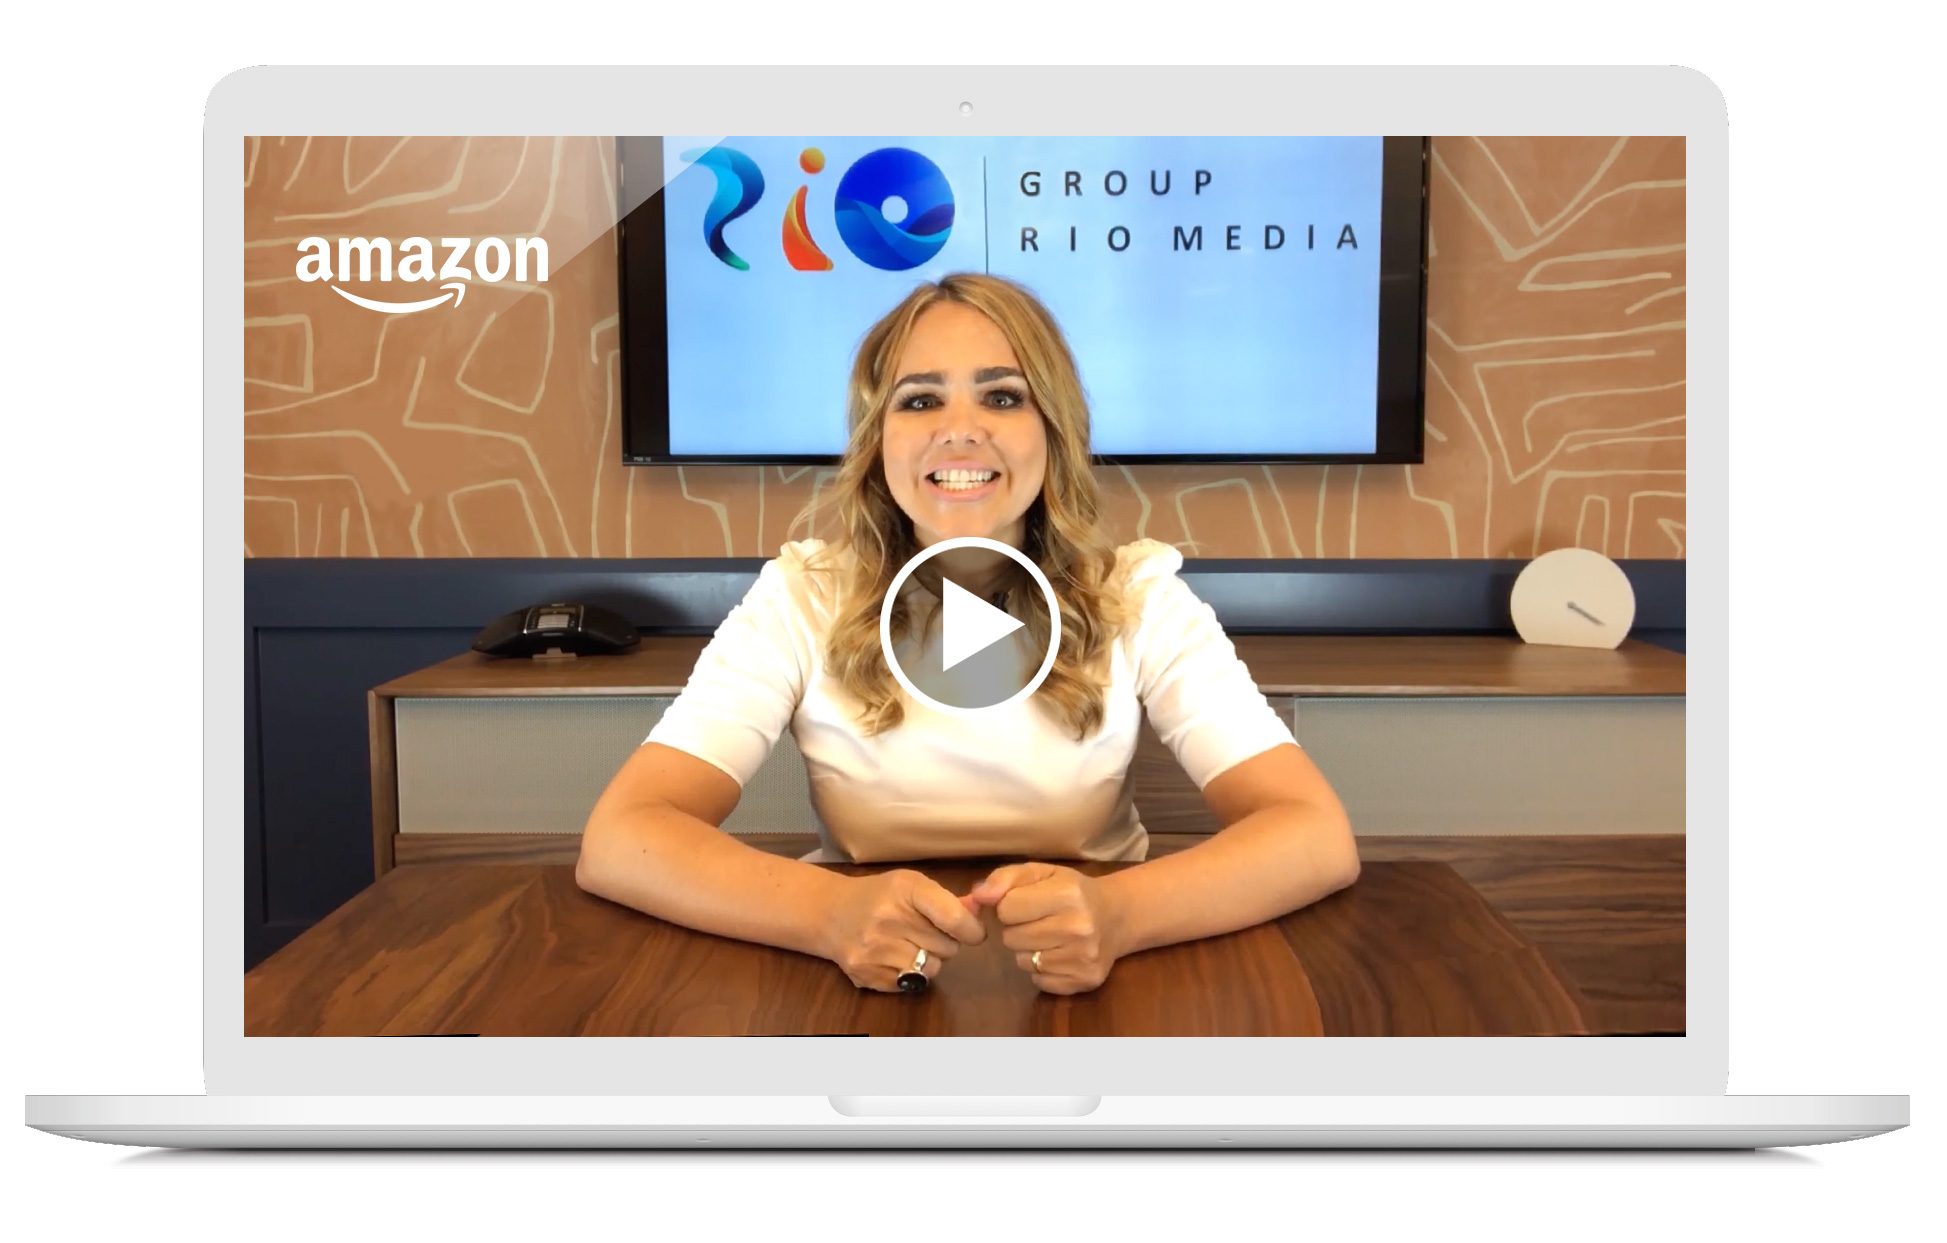 Opt-in_Group_Rio_Media_Amazon.png